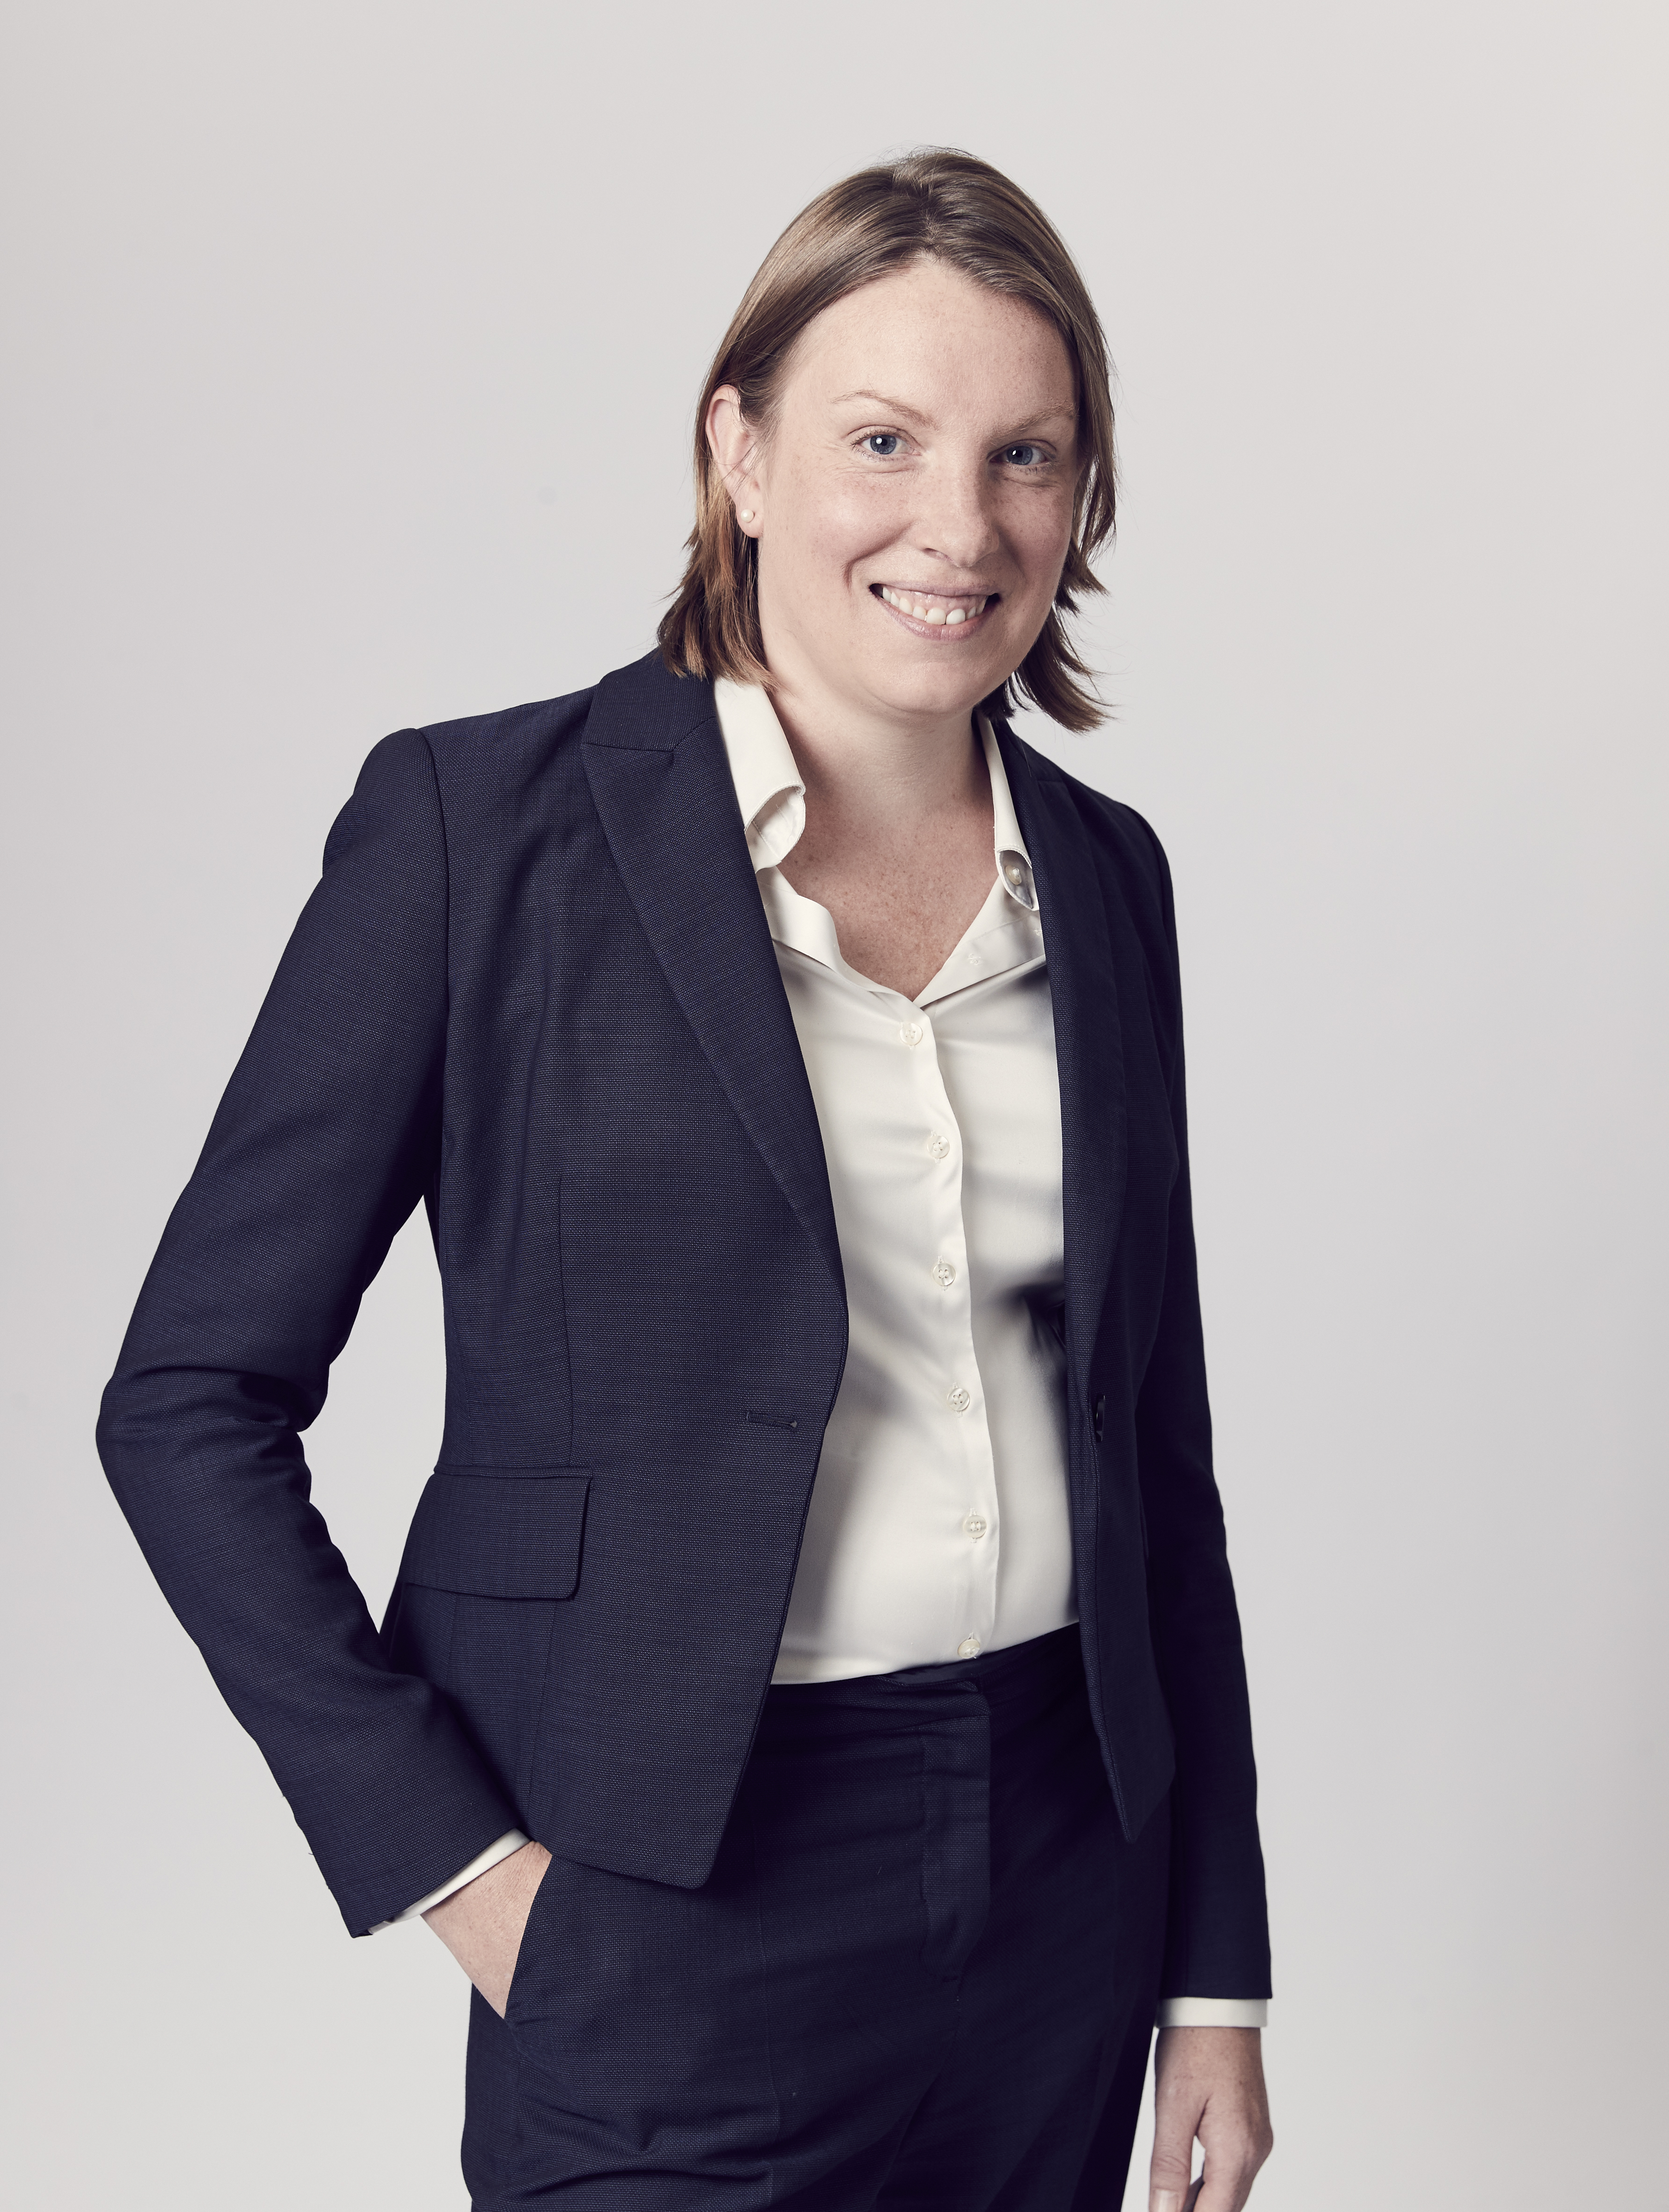 Tracey Crouch, Minister for Sport and Civil Society, was also appointed the ministerial lead for loneliness in January 2018.